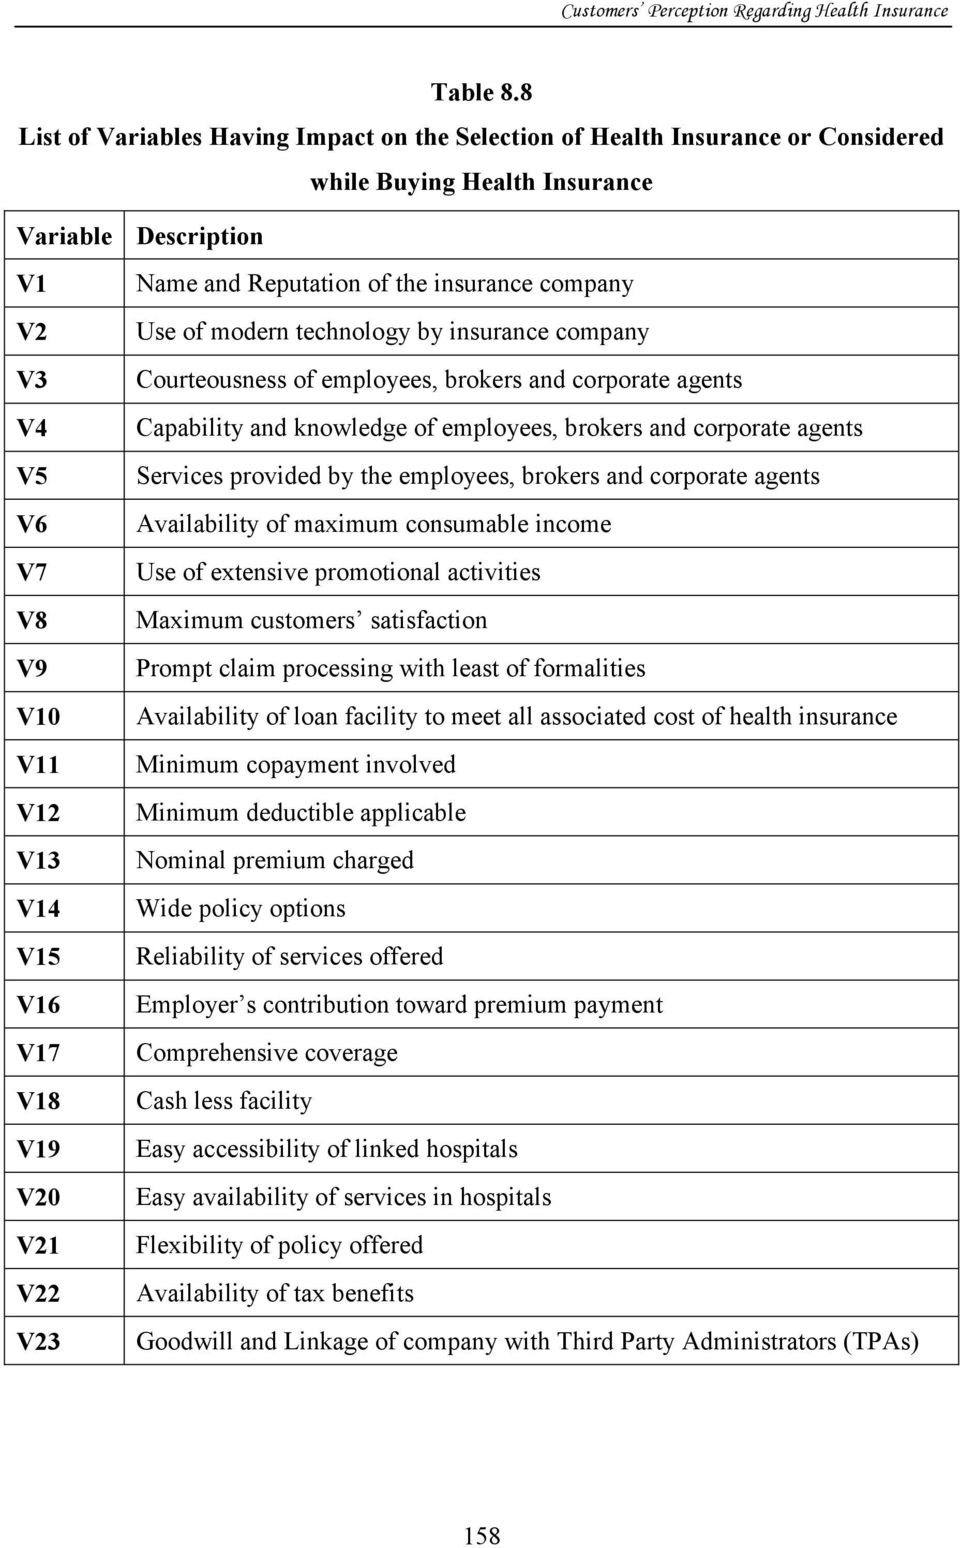 V19 V20 V21 V22 V23 Name and Reputation of the insurance company Use of modern technology by insurance company Courteousness of employees, brokers and corporate agents Capability and knowledge of